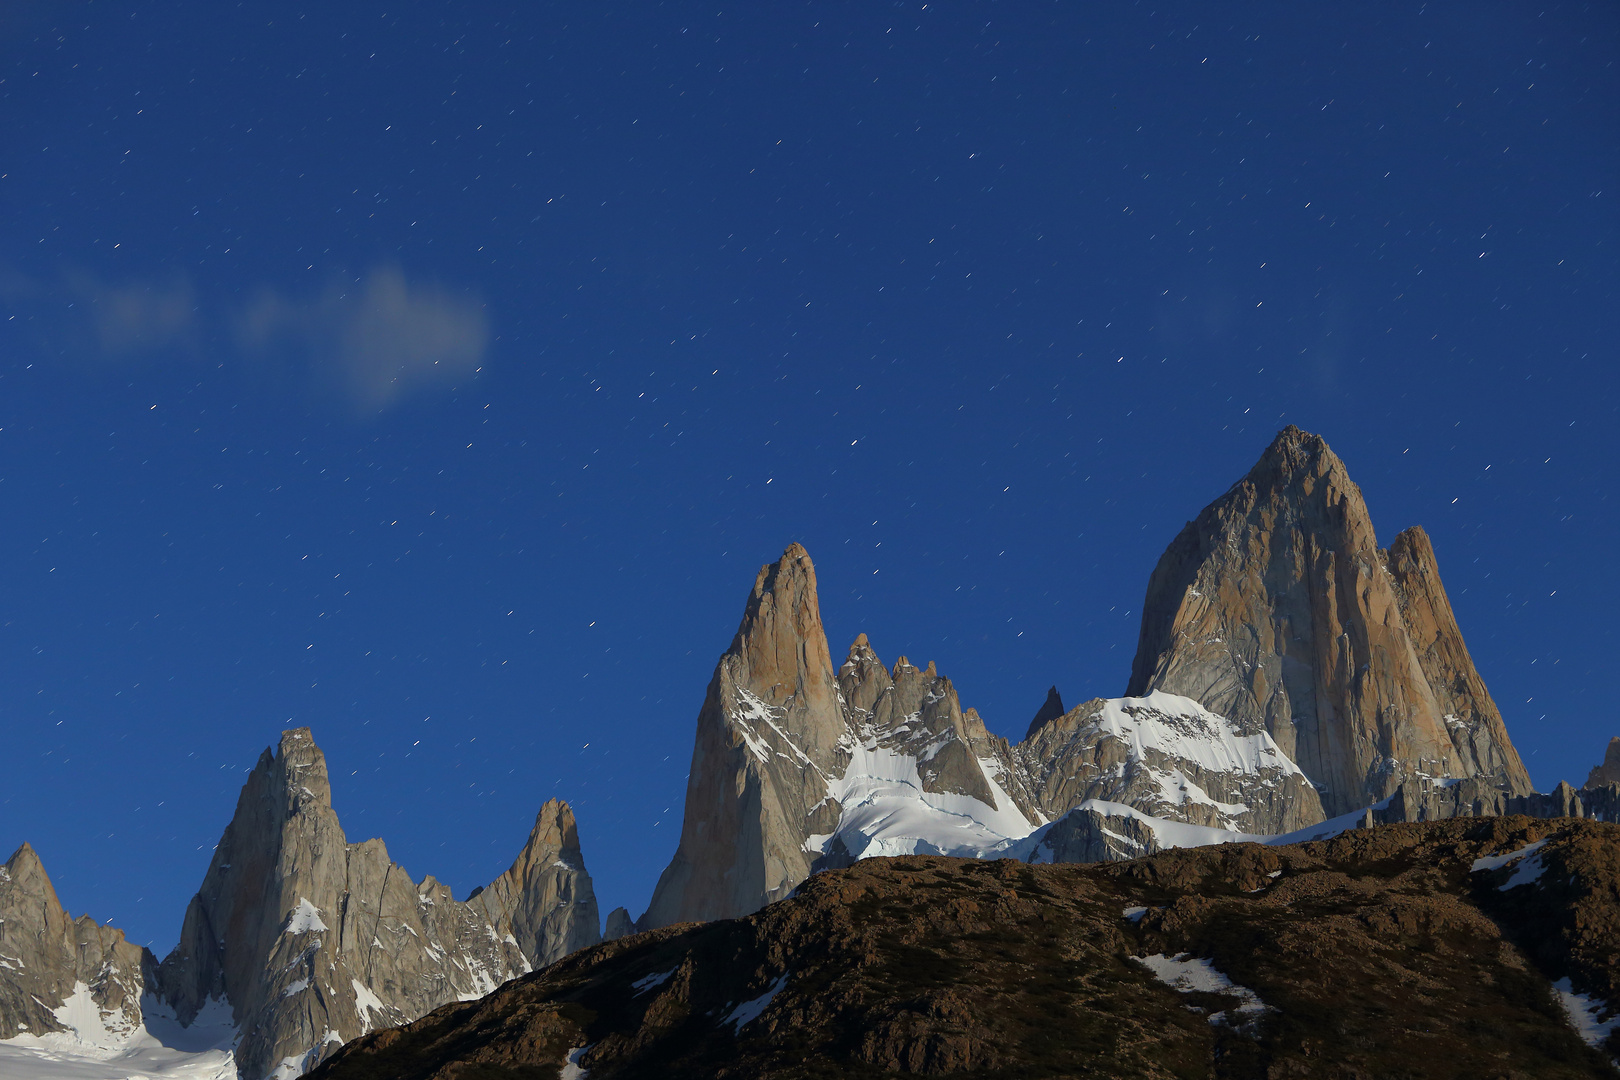 night view on Fitz Roy with stars and moonlight, El Chaltén - Patagonia - Argentina